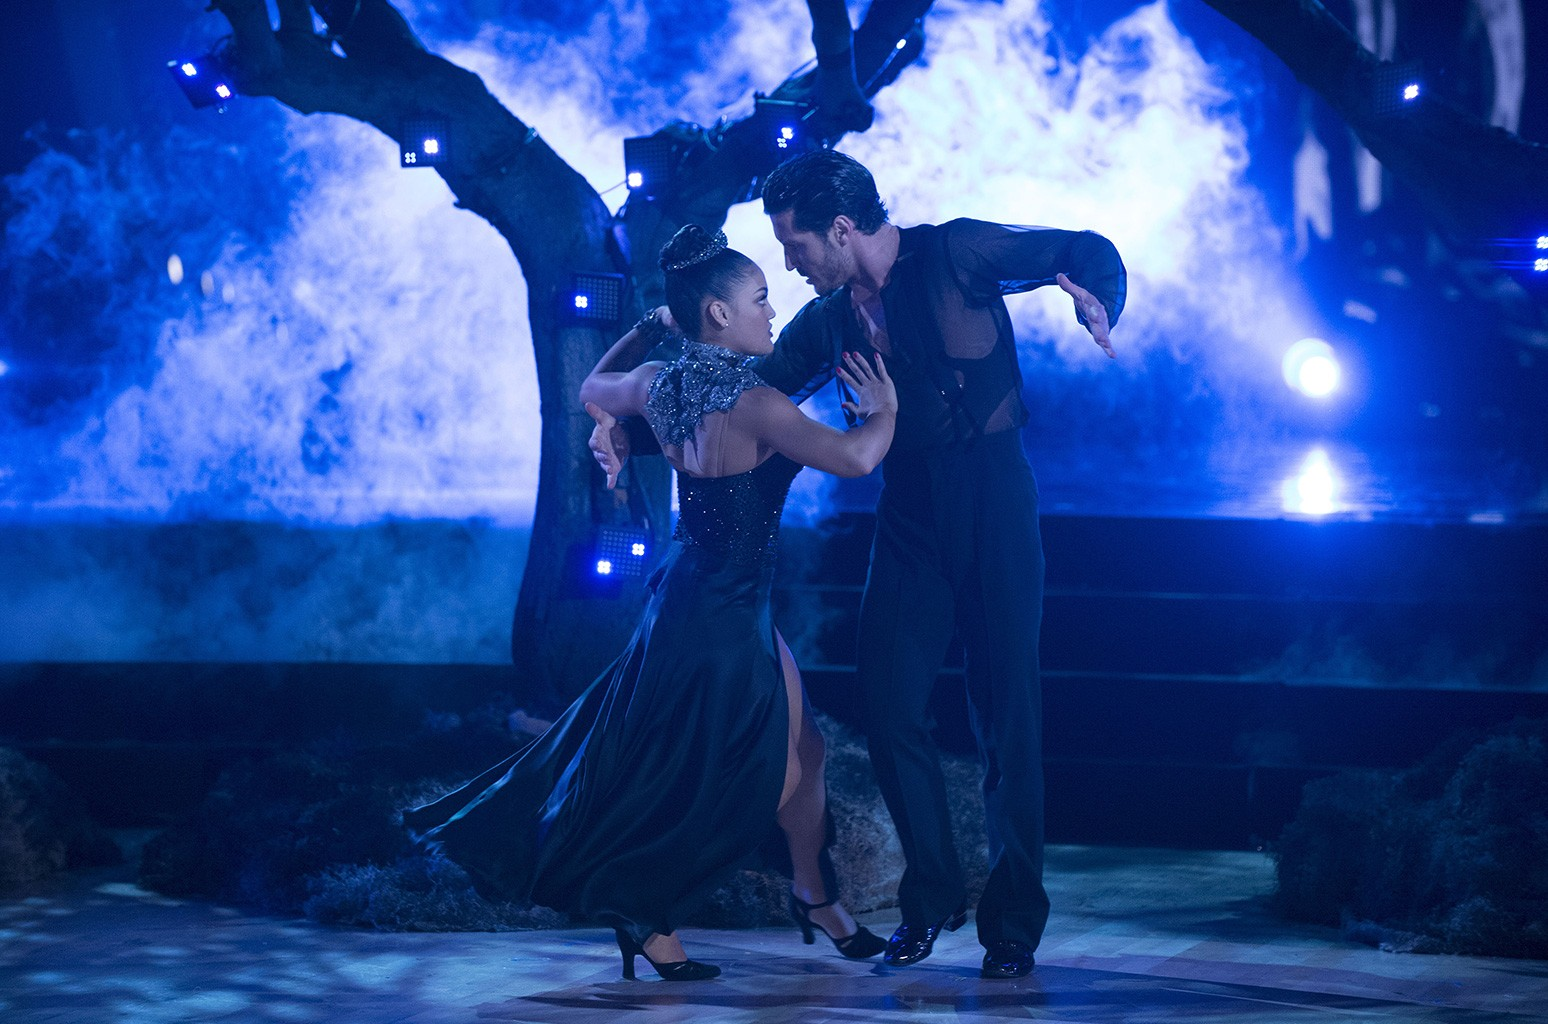 Laurie Hernandez and Valentin Chmerkovskiy on Dancing with the Stars on Nov. 14, 2016.